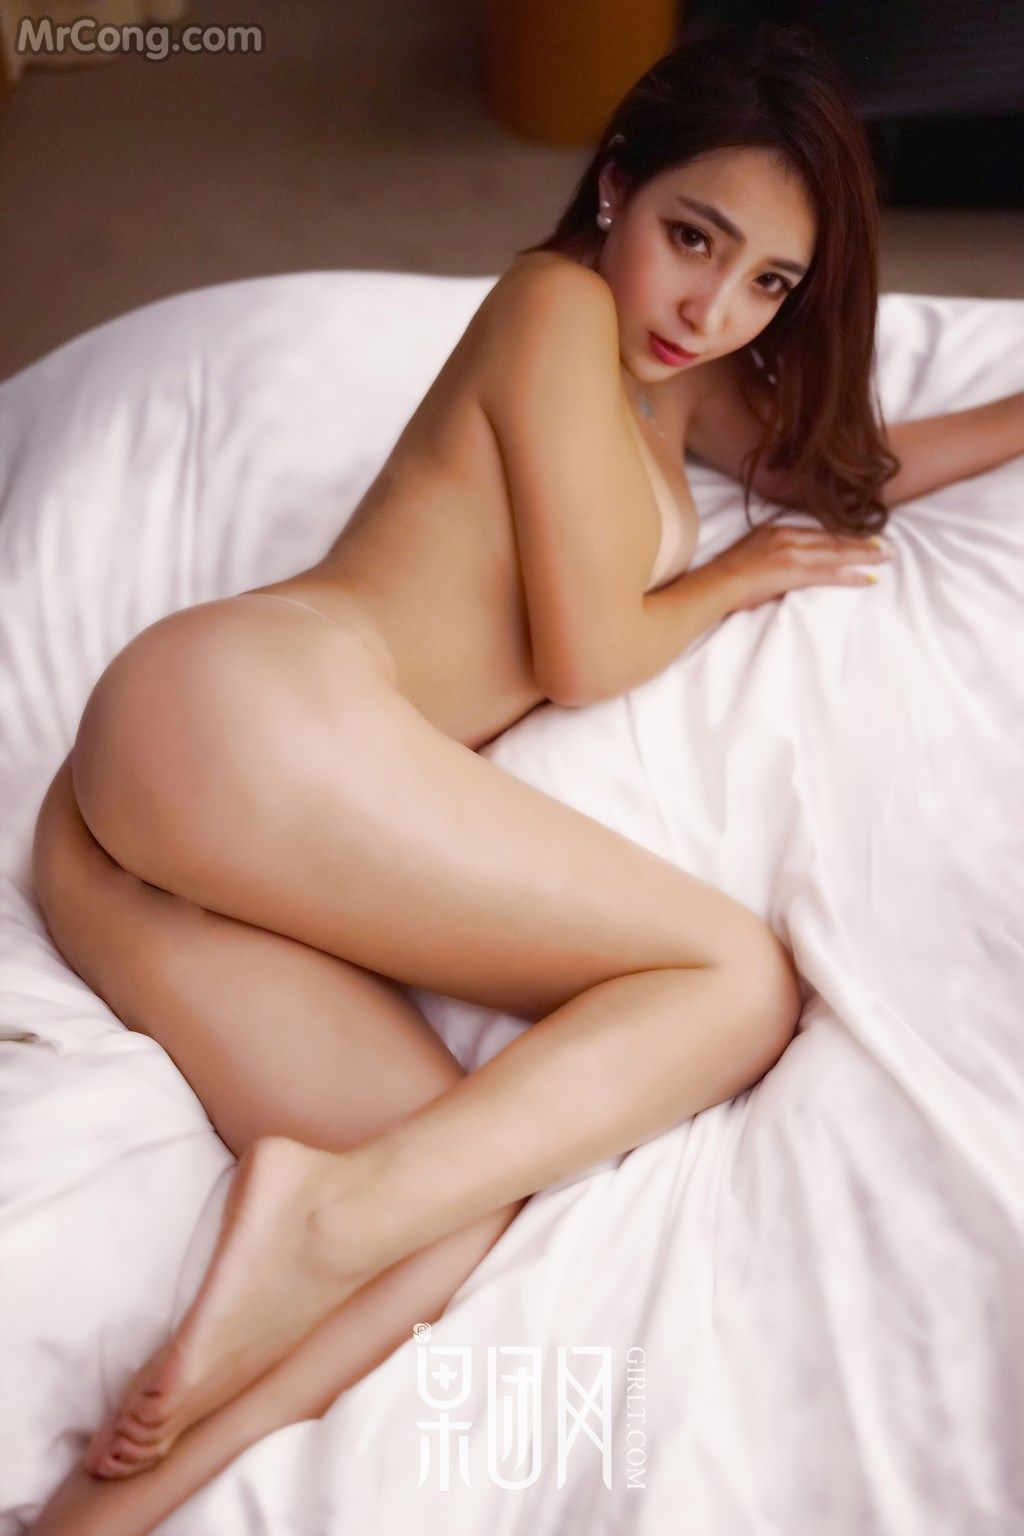 Free & Full high quality sexy girl pictures from Free Xiuren